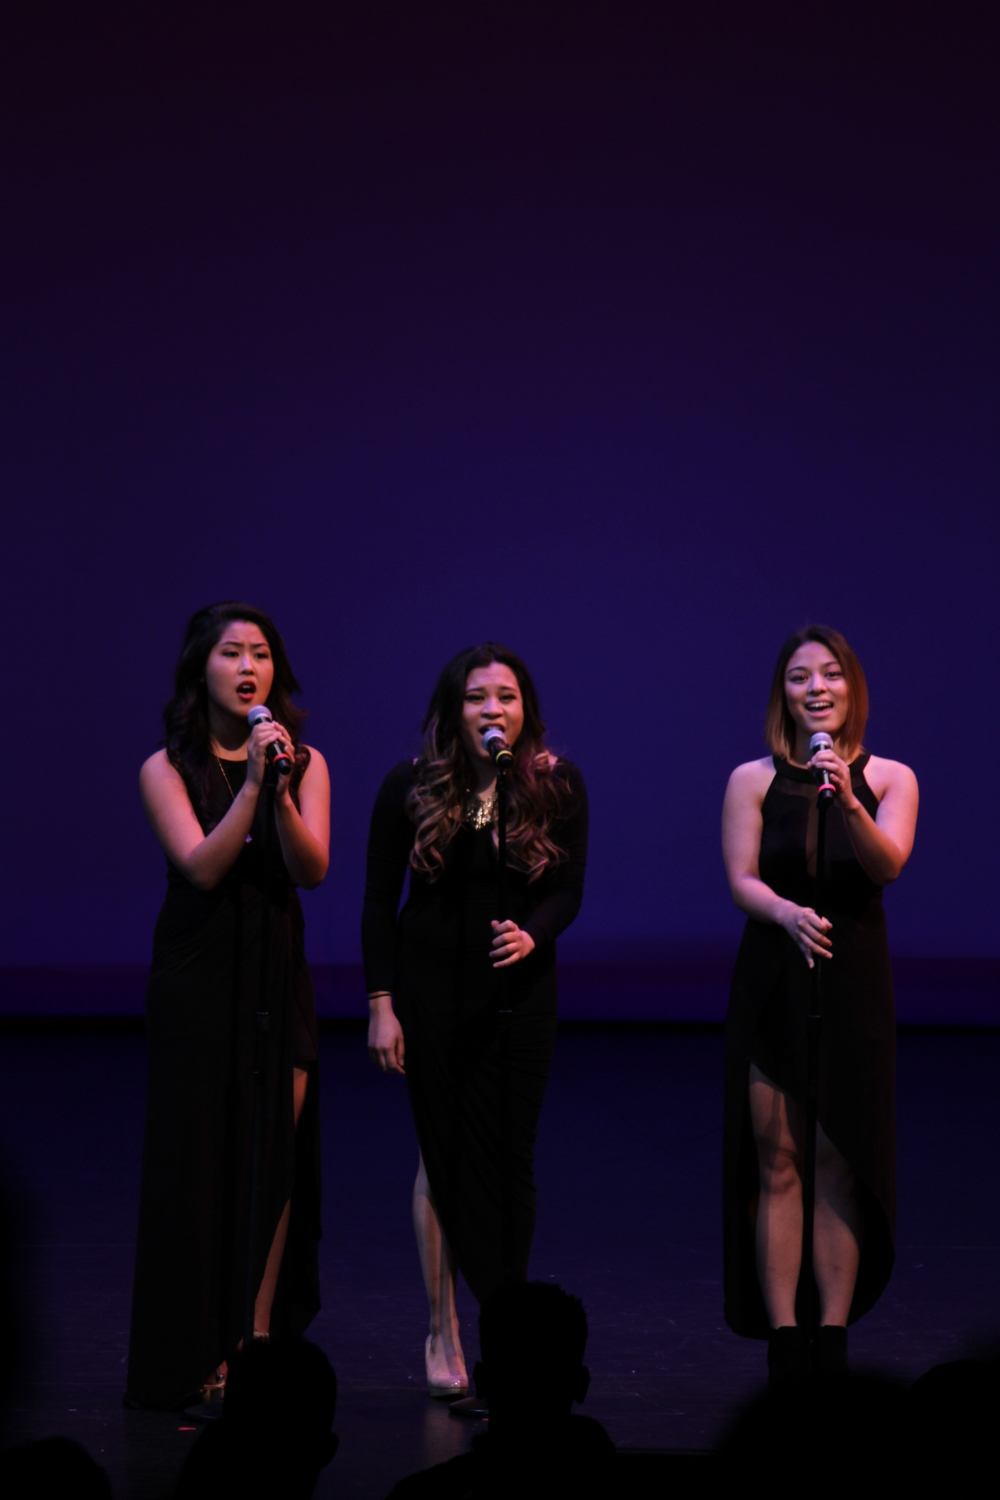 Alyssa Abrenica, Kelsey Rae Largoza and Mary Ann Villano started the night with the national anthem.